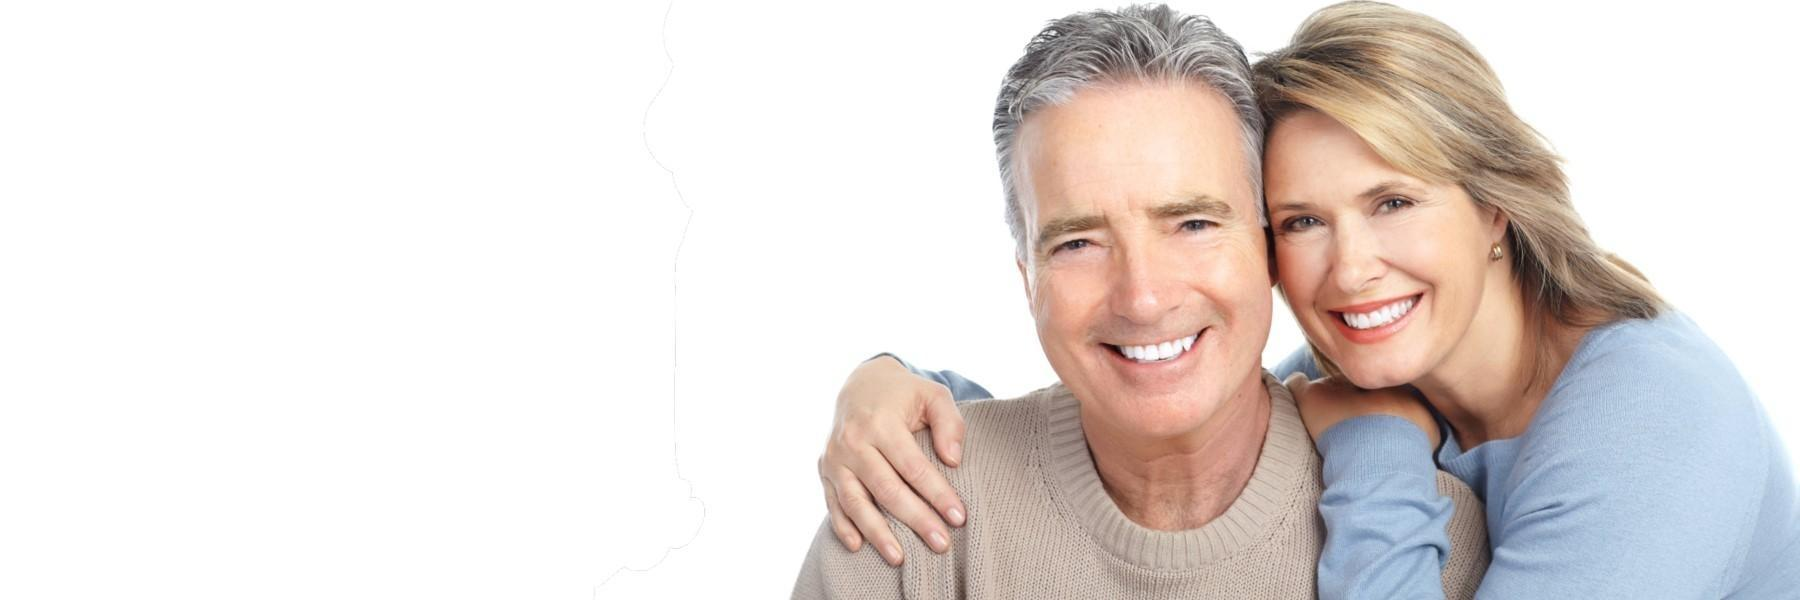 Full & Partial Dentures in Stone Ridge, VA